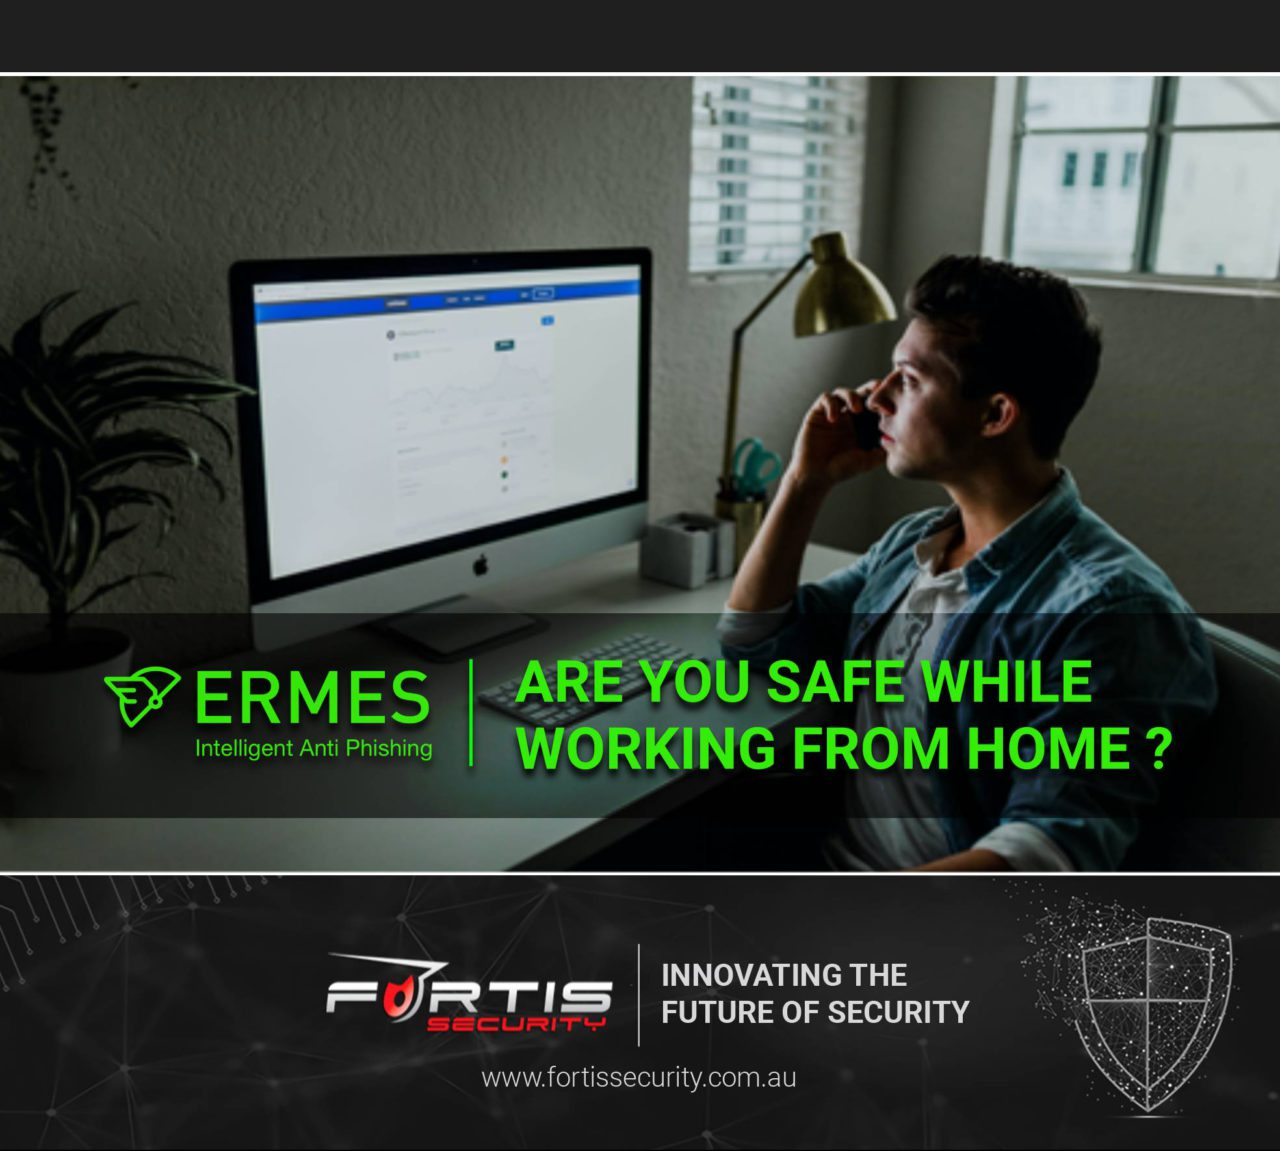 https://www.fortissecurity.com.au/wp-content/uploads/2021/06/Article-10-1280x1151.jpg